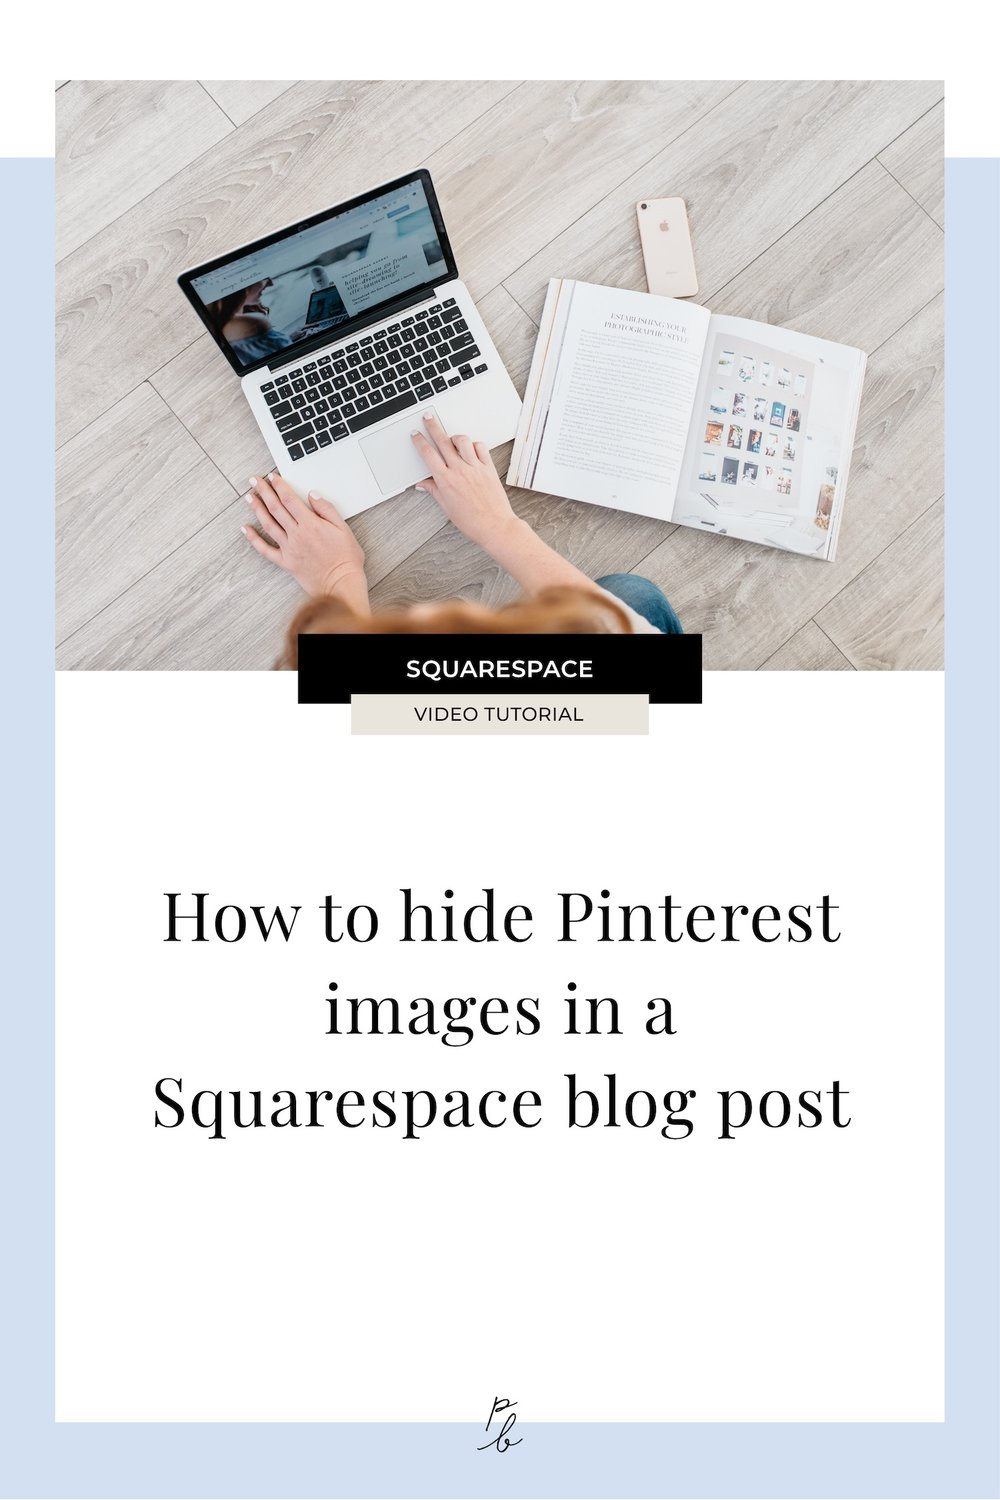 How to hide Pinterest images in a Squarespace blog post.jpg